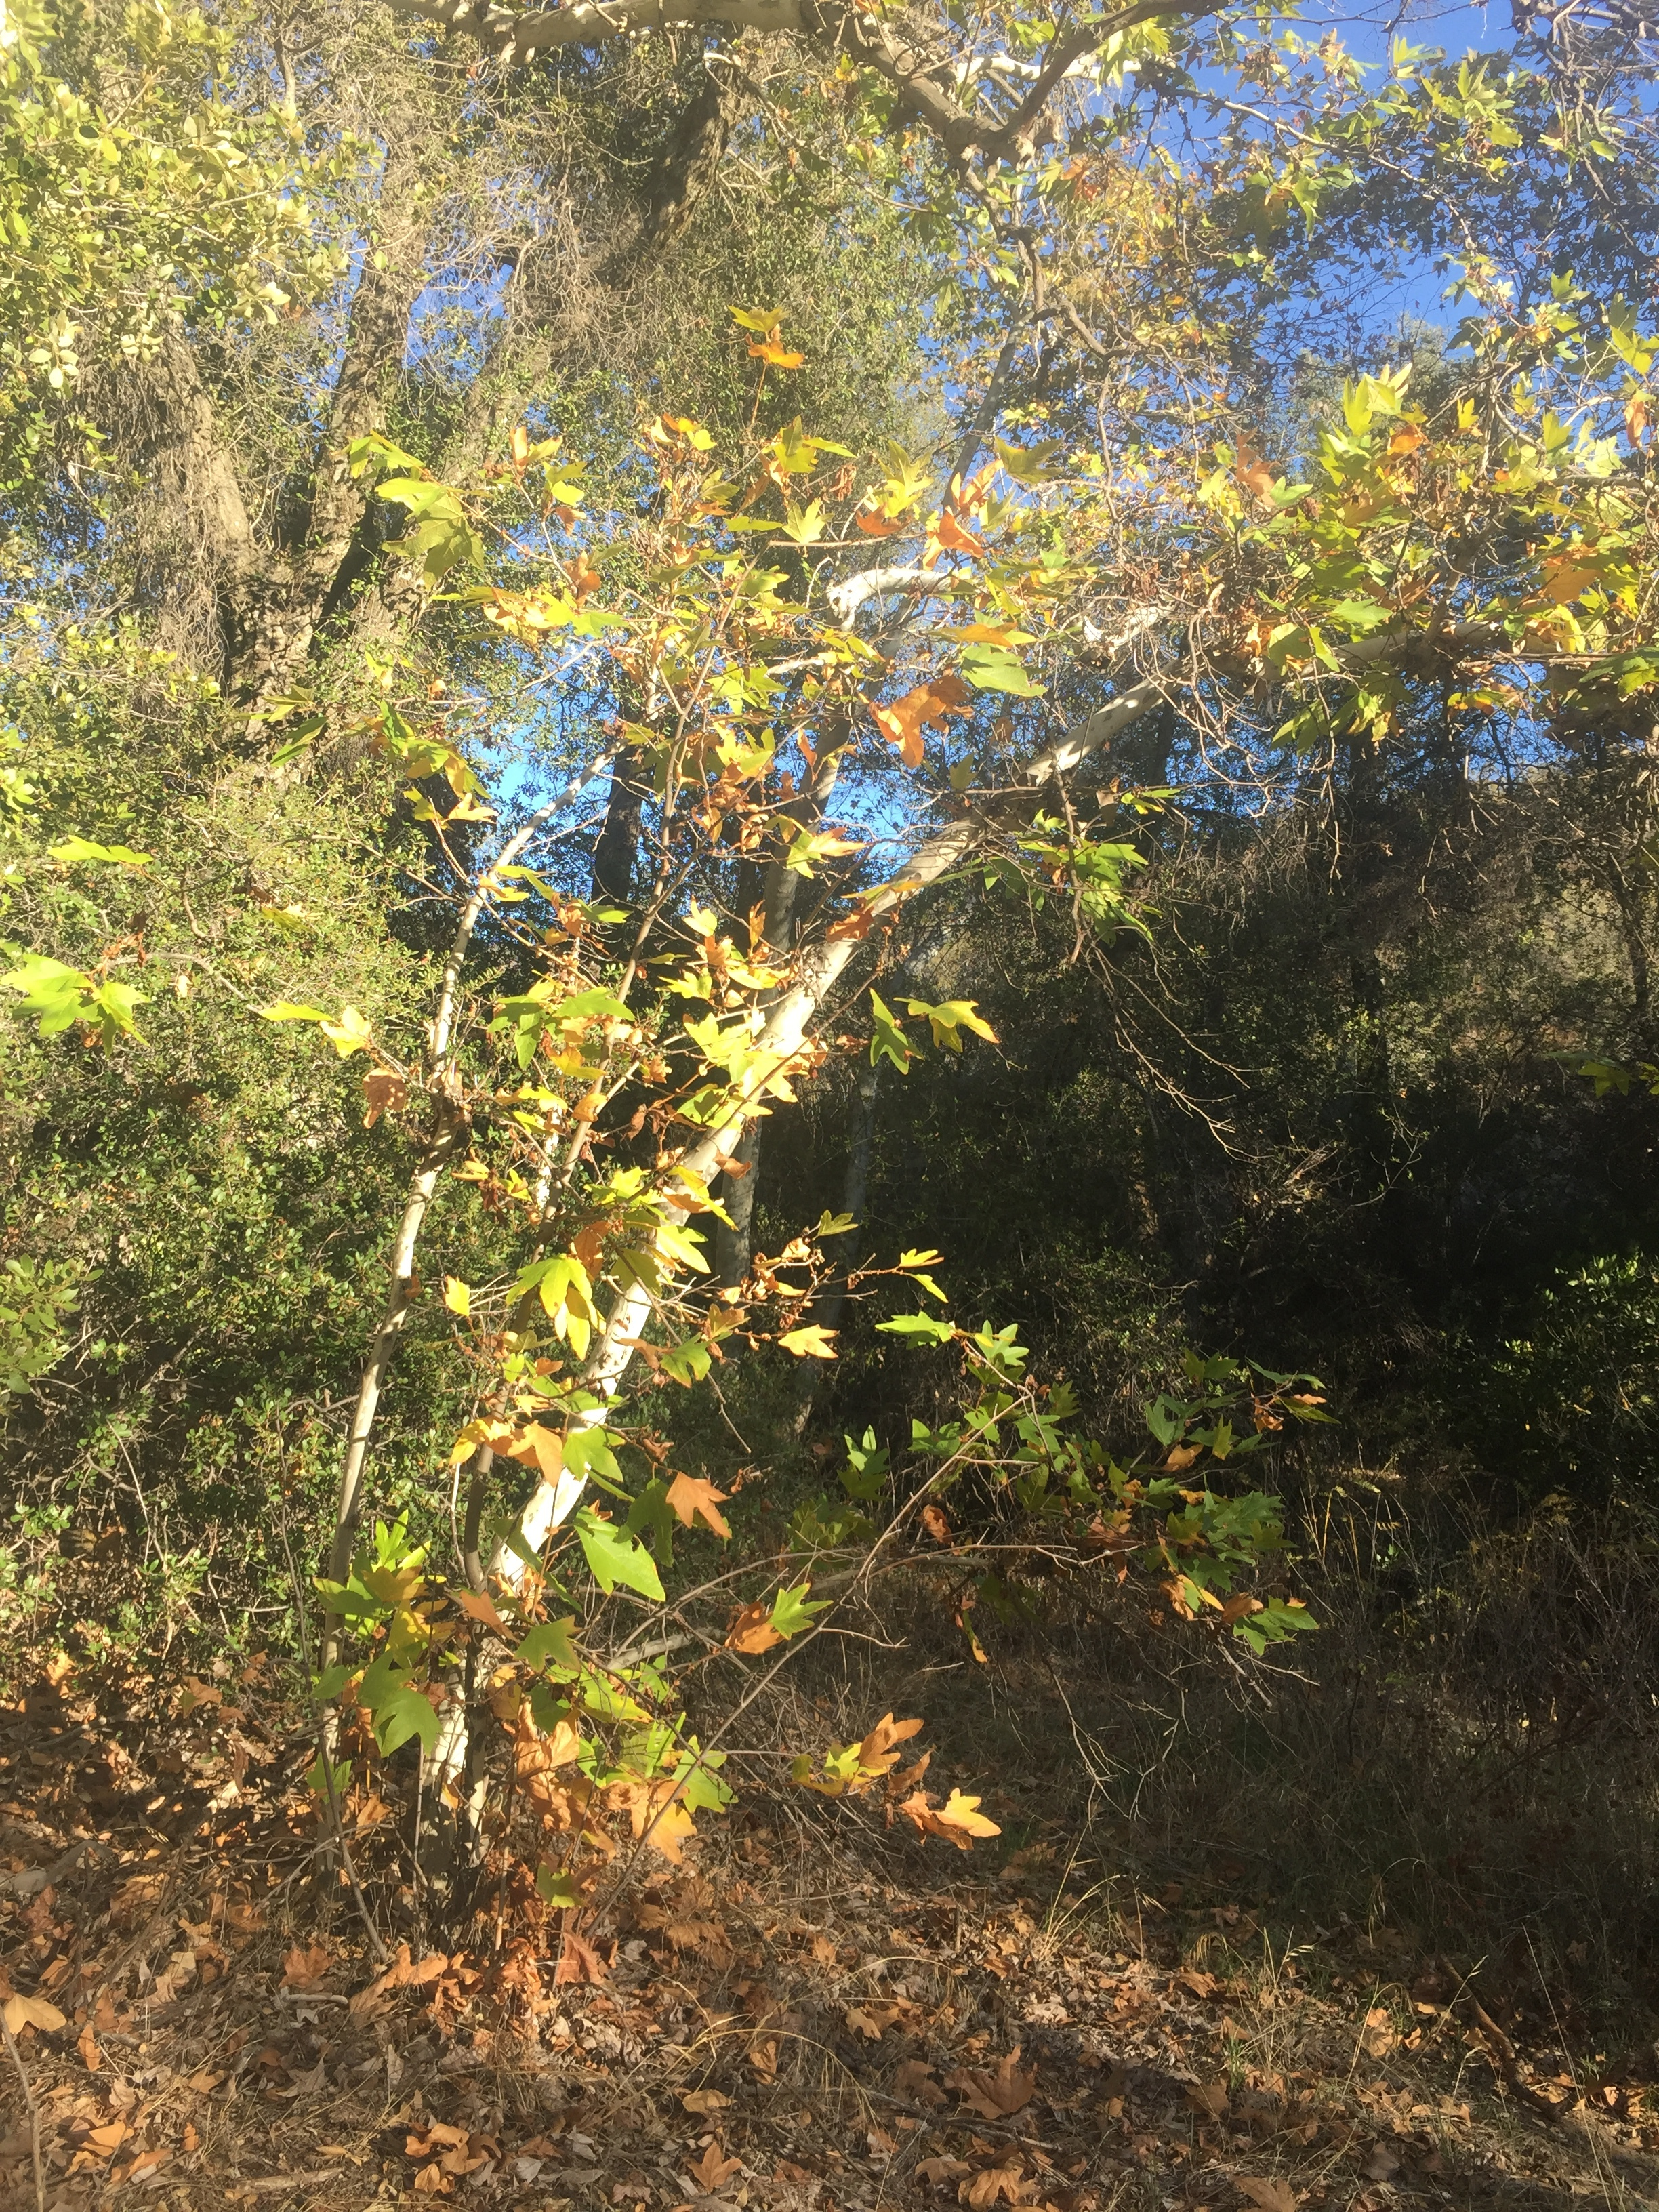 It's fall in the Agua Caliente drainage